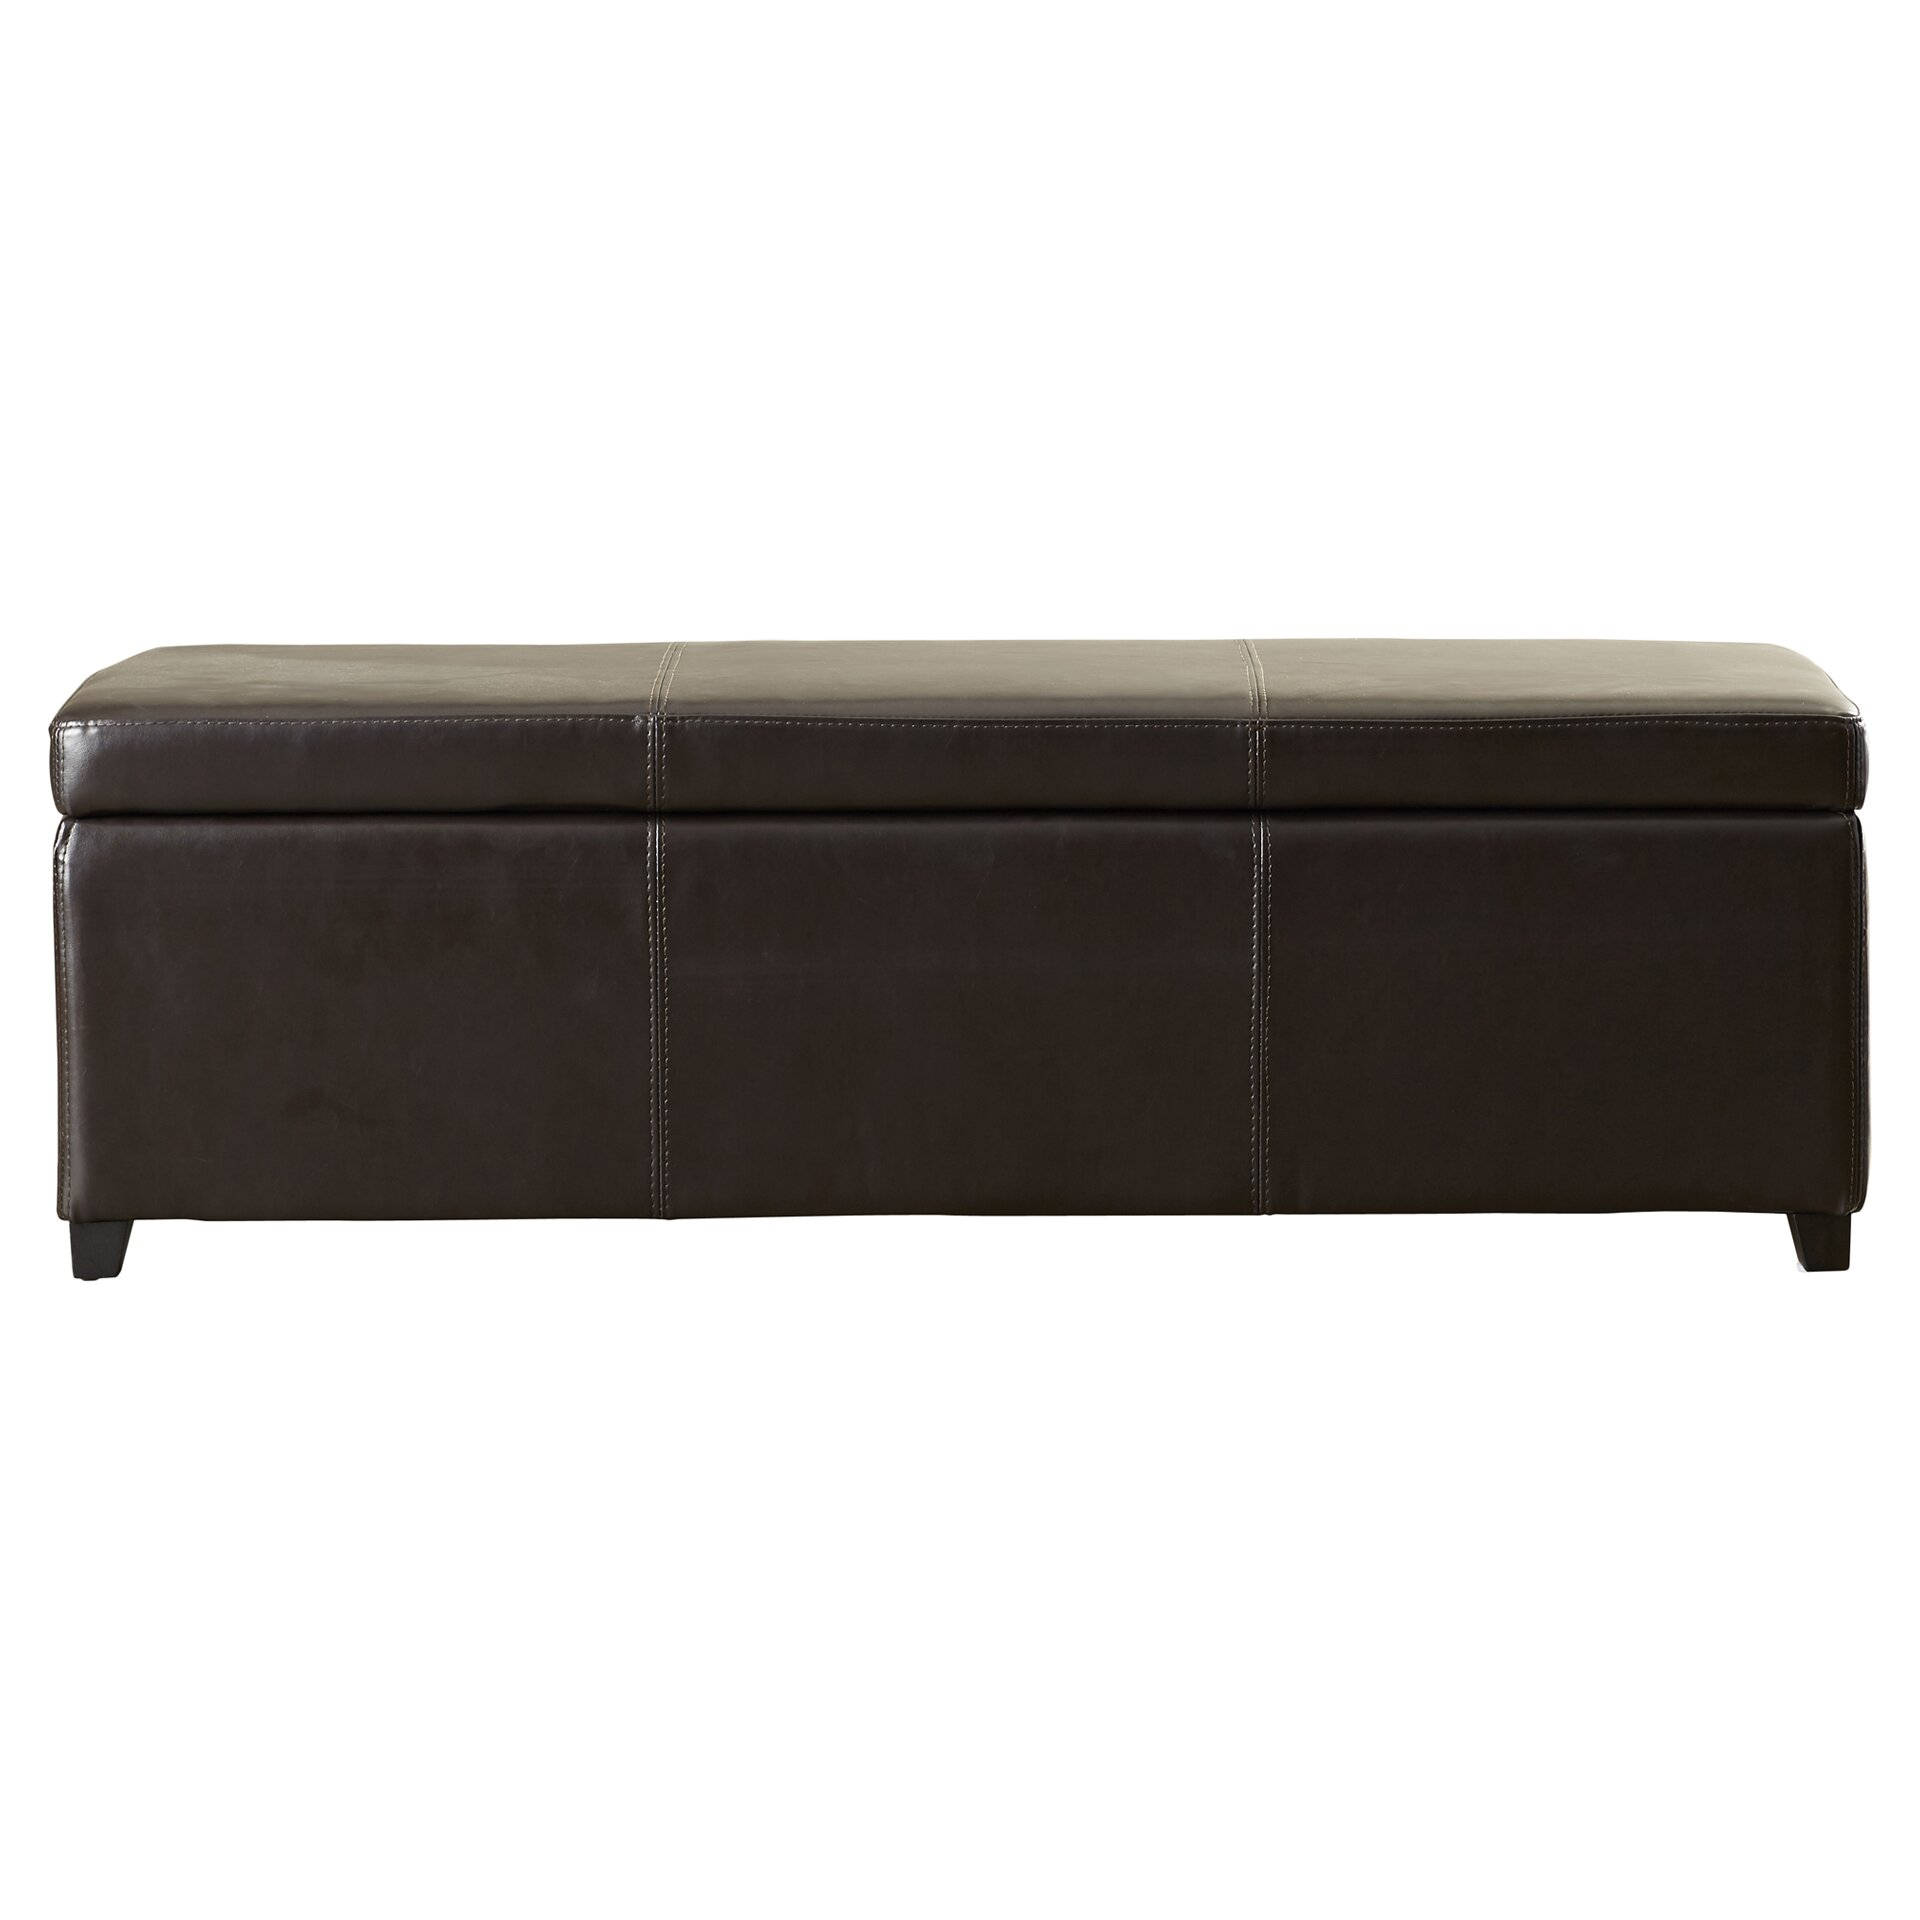 Charlton Home Ephraim Leather Storage Ottoman Bench Reviews